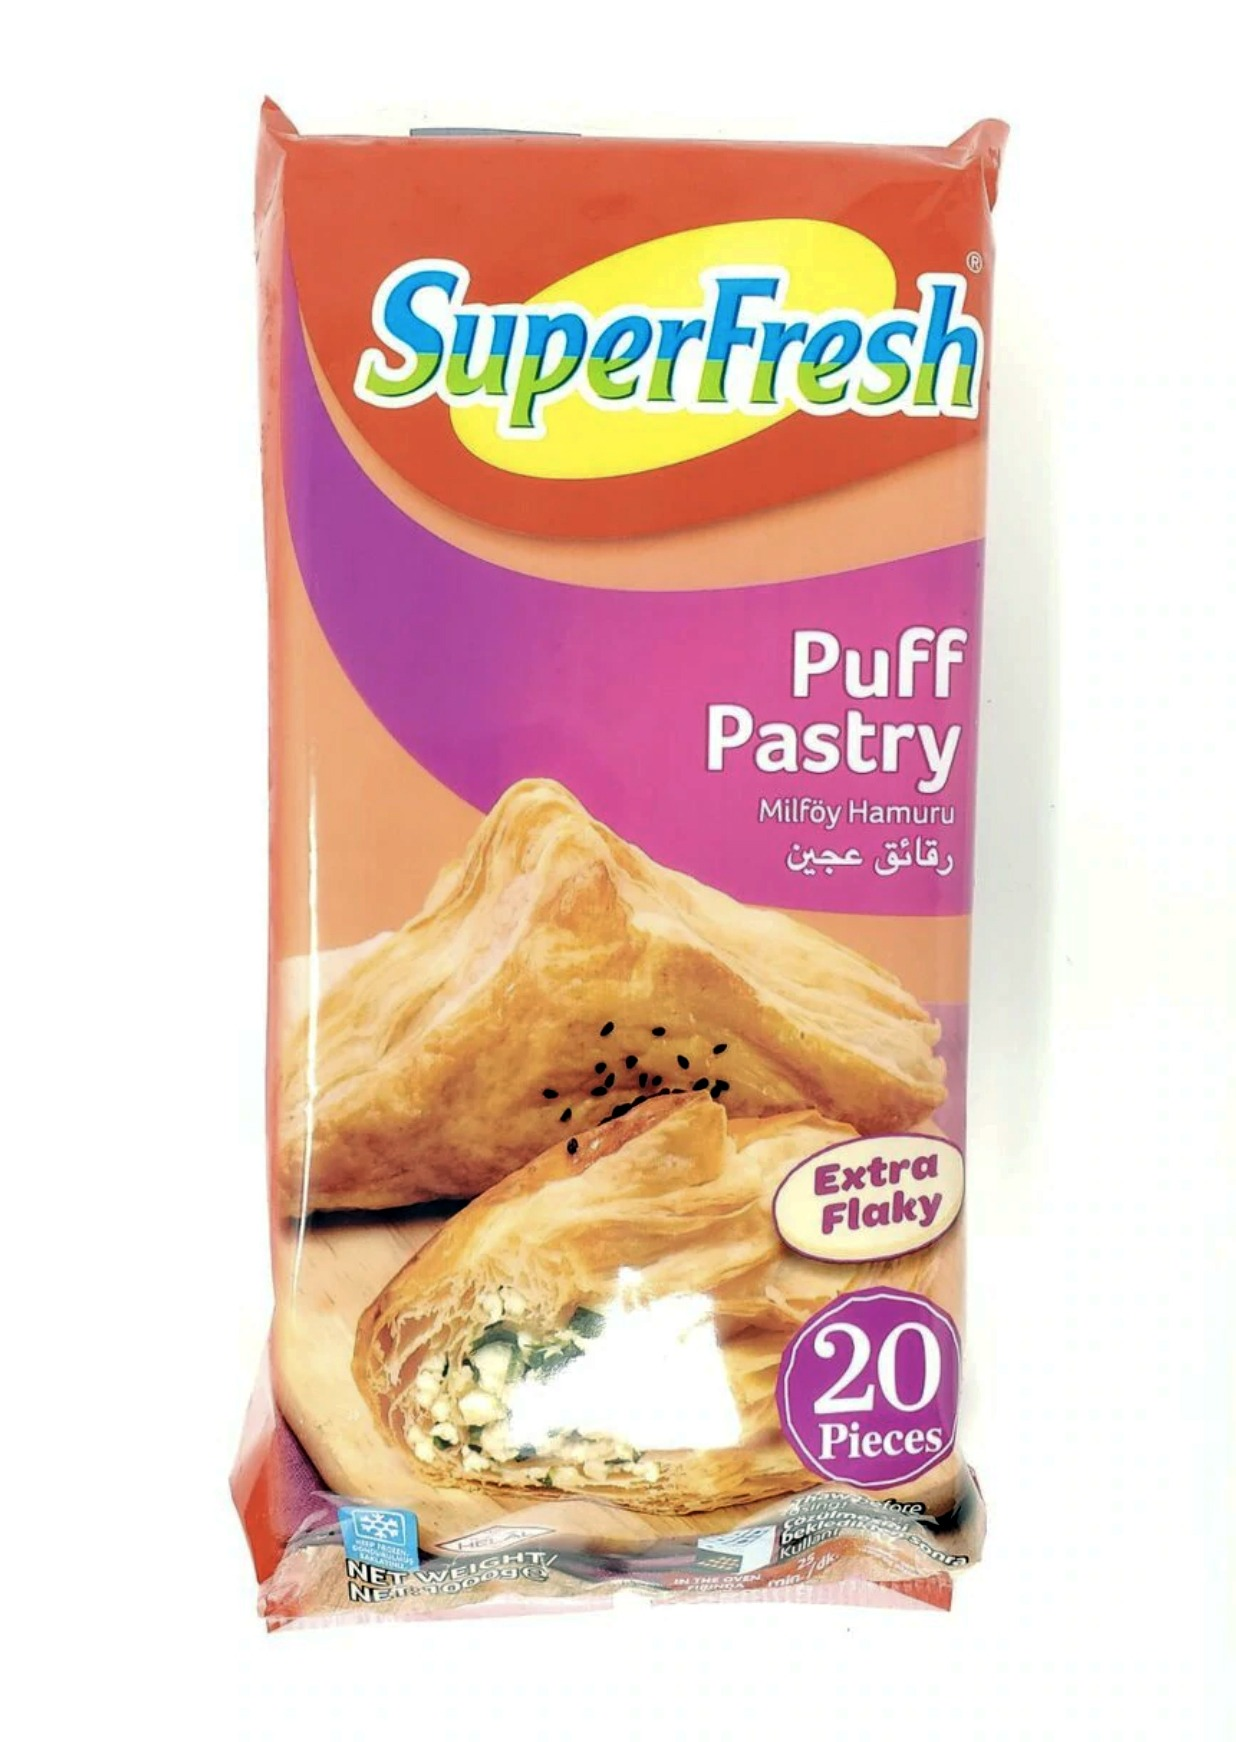 Süperfress Puff Pastry Extra Flakly 20 Pieces